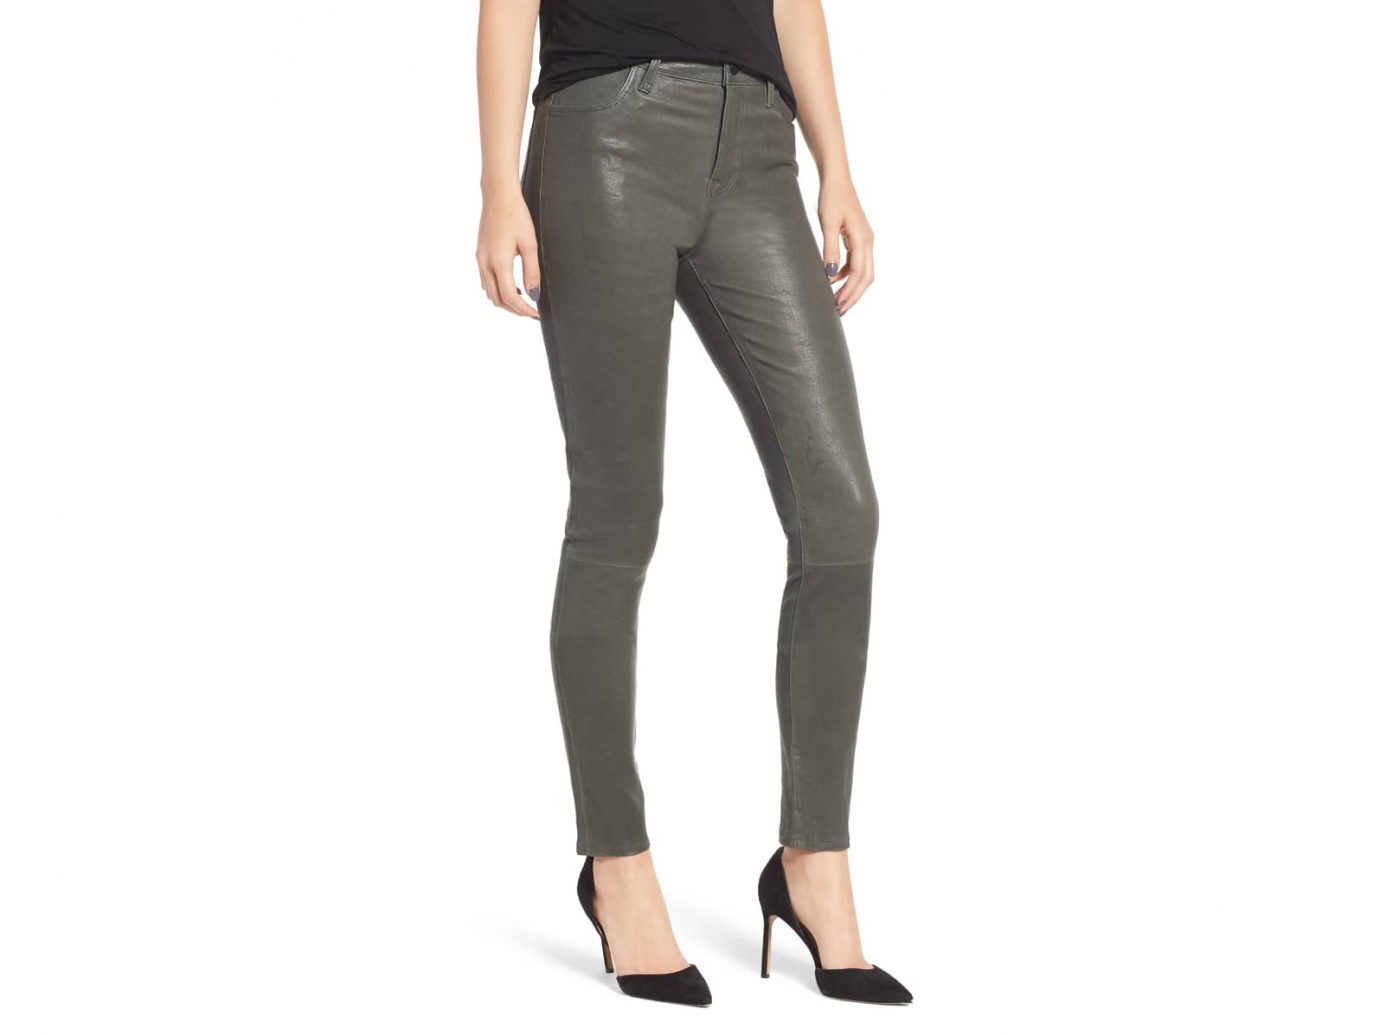 'Maria' Lambskin Leather Leggings, Main, color, Granite'Maria' Lambskin Leather Leggings, Main, color, Granite 'Maria' Lambskin Leather Leggings J BRAND